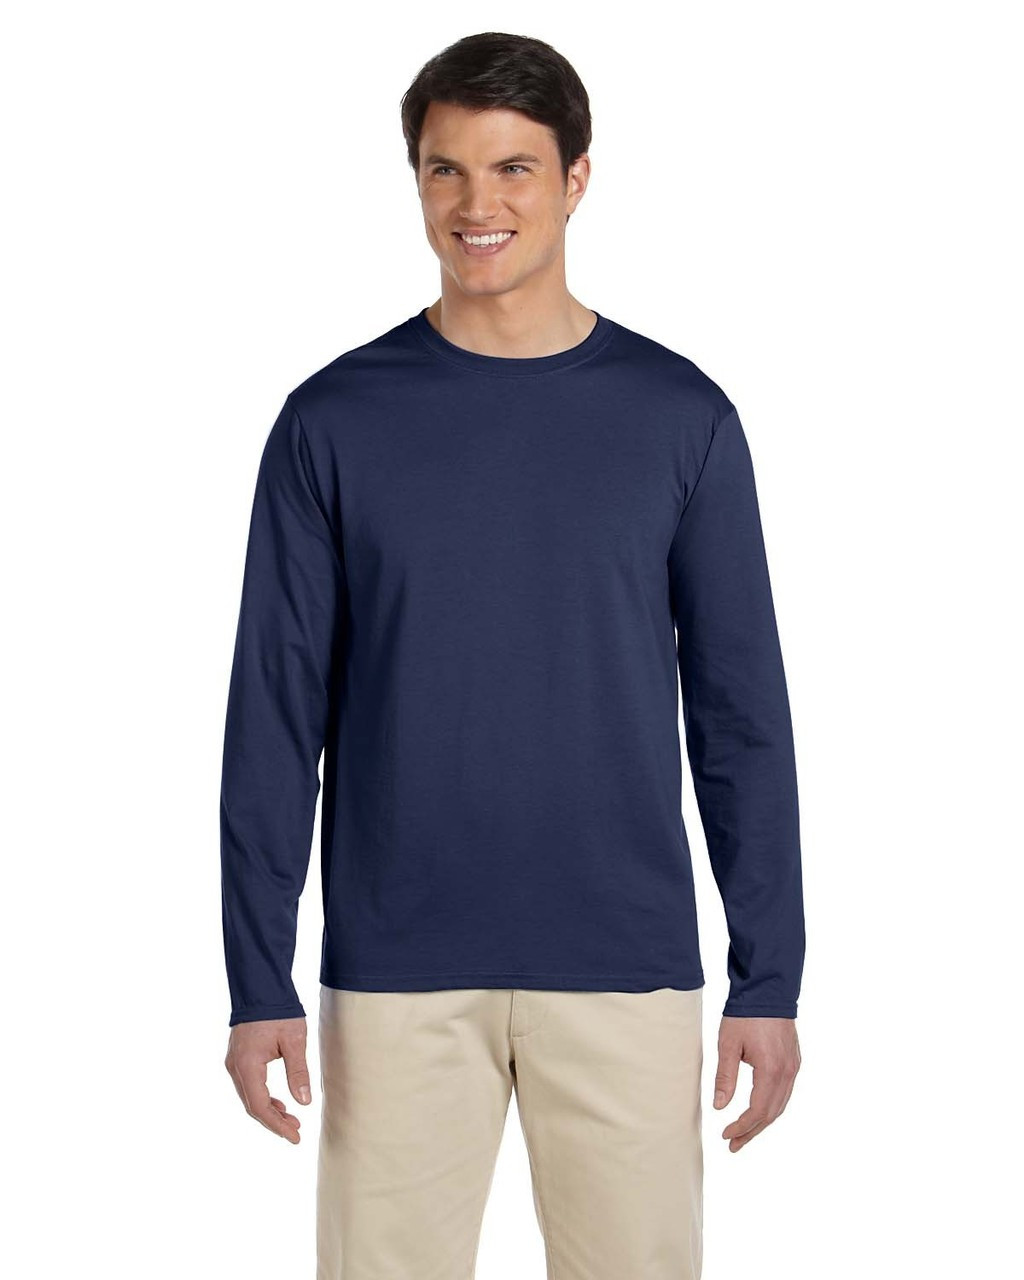 Navy - G644 SoftStyle Long Sleeve T-Shirt | Blankclothing.ca